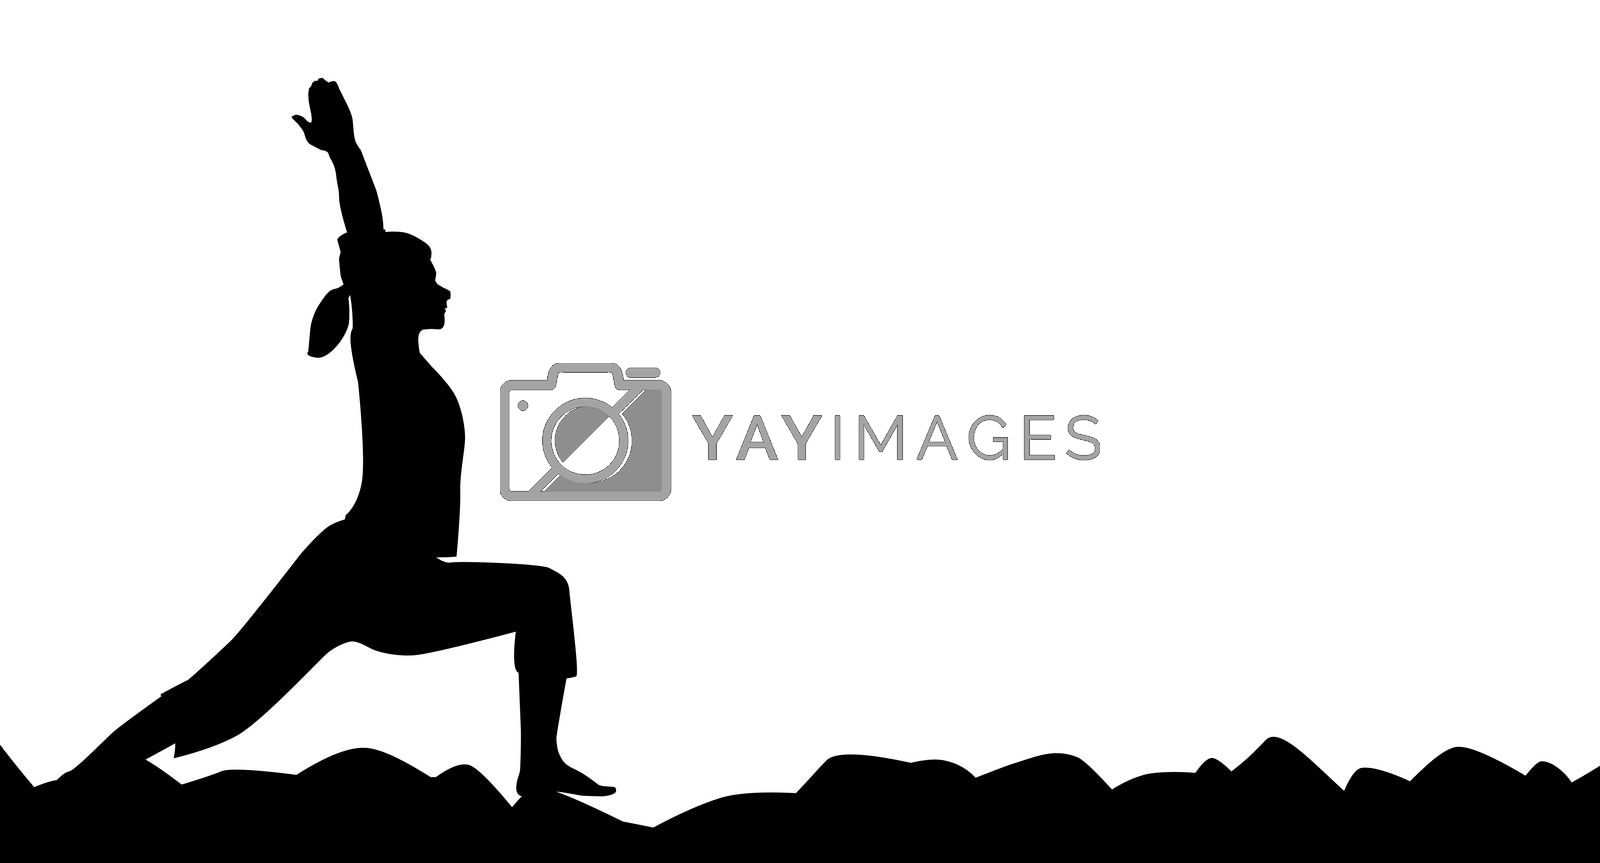 Yoga pose in silhouette over a white background